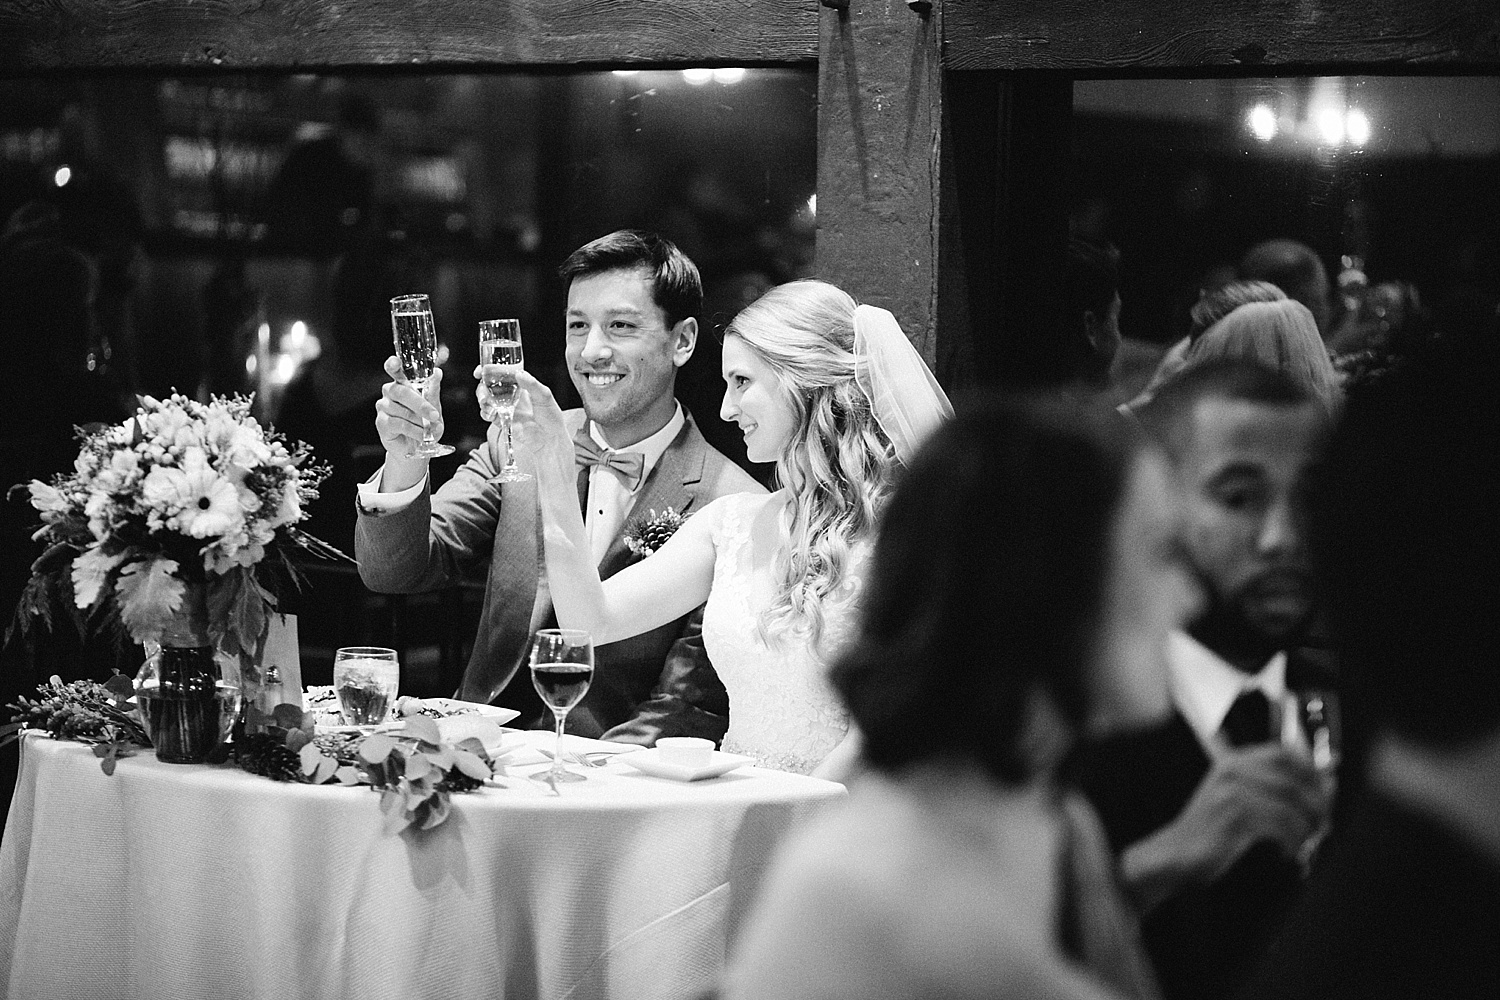 jessdavid_barnonbridge_phoenixville_winter_wedding_image_098.jpg